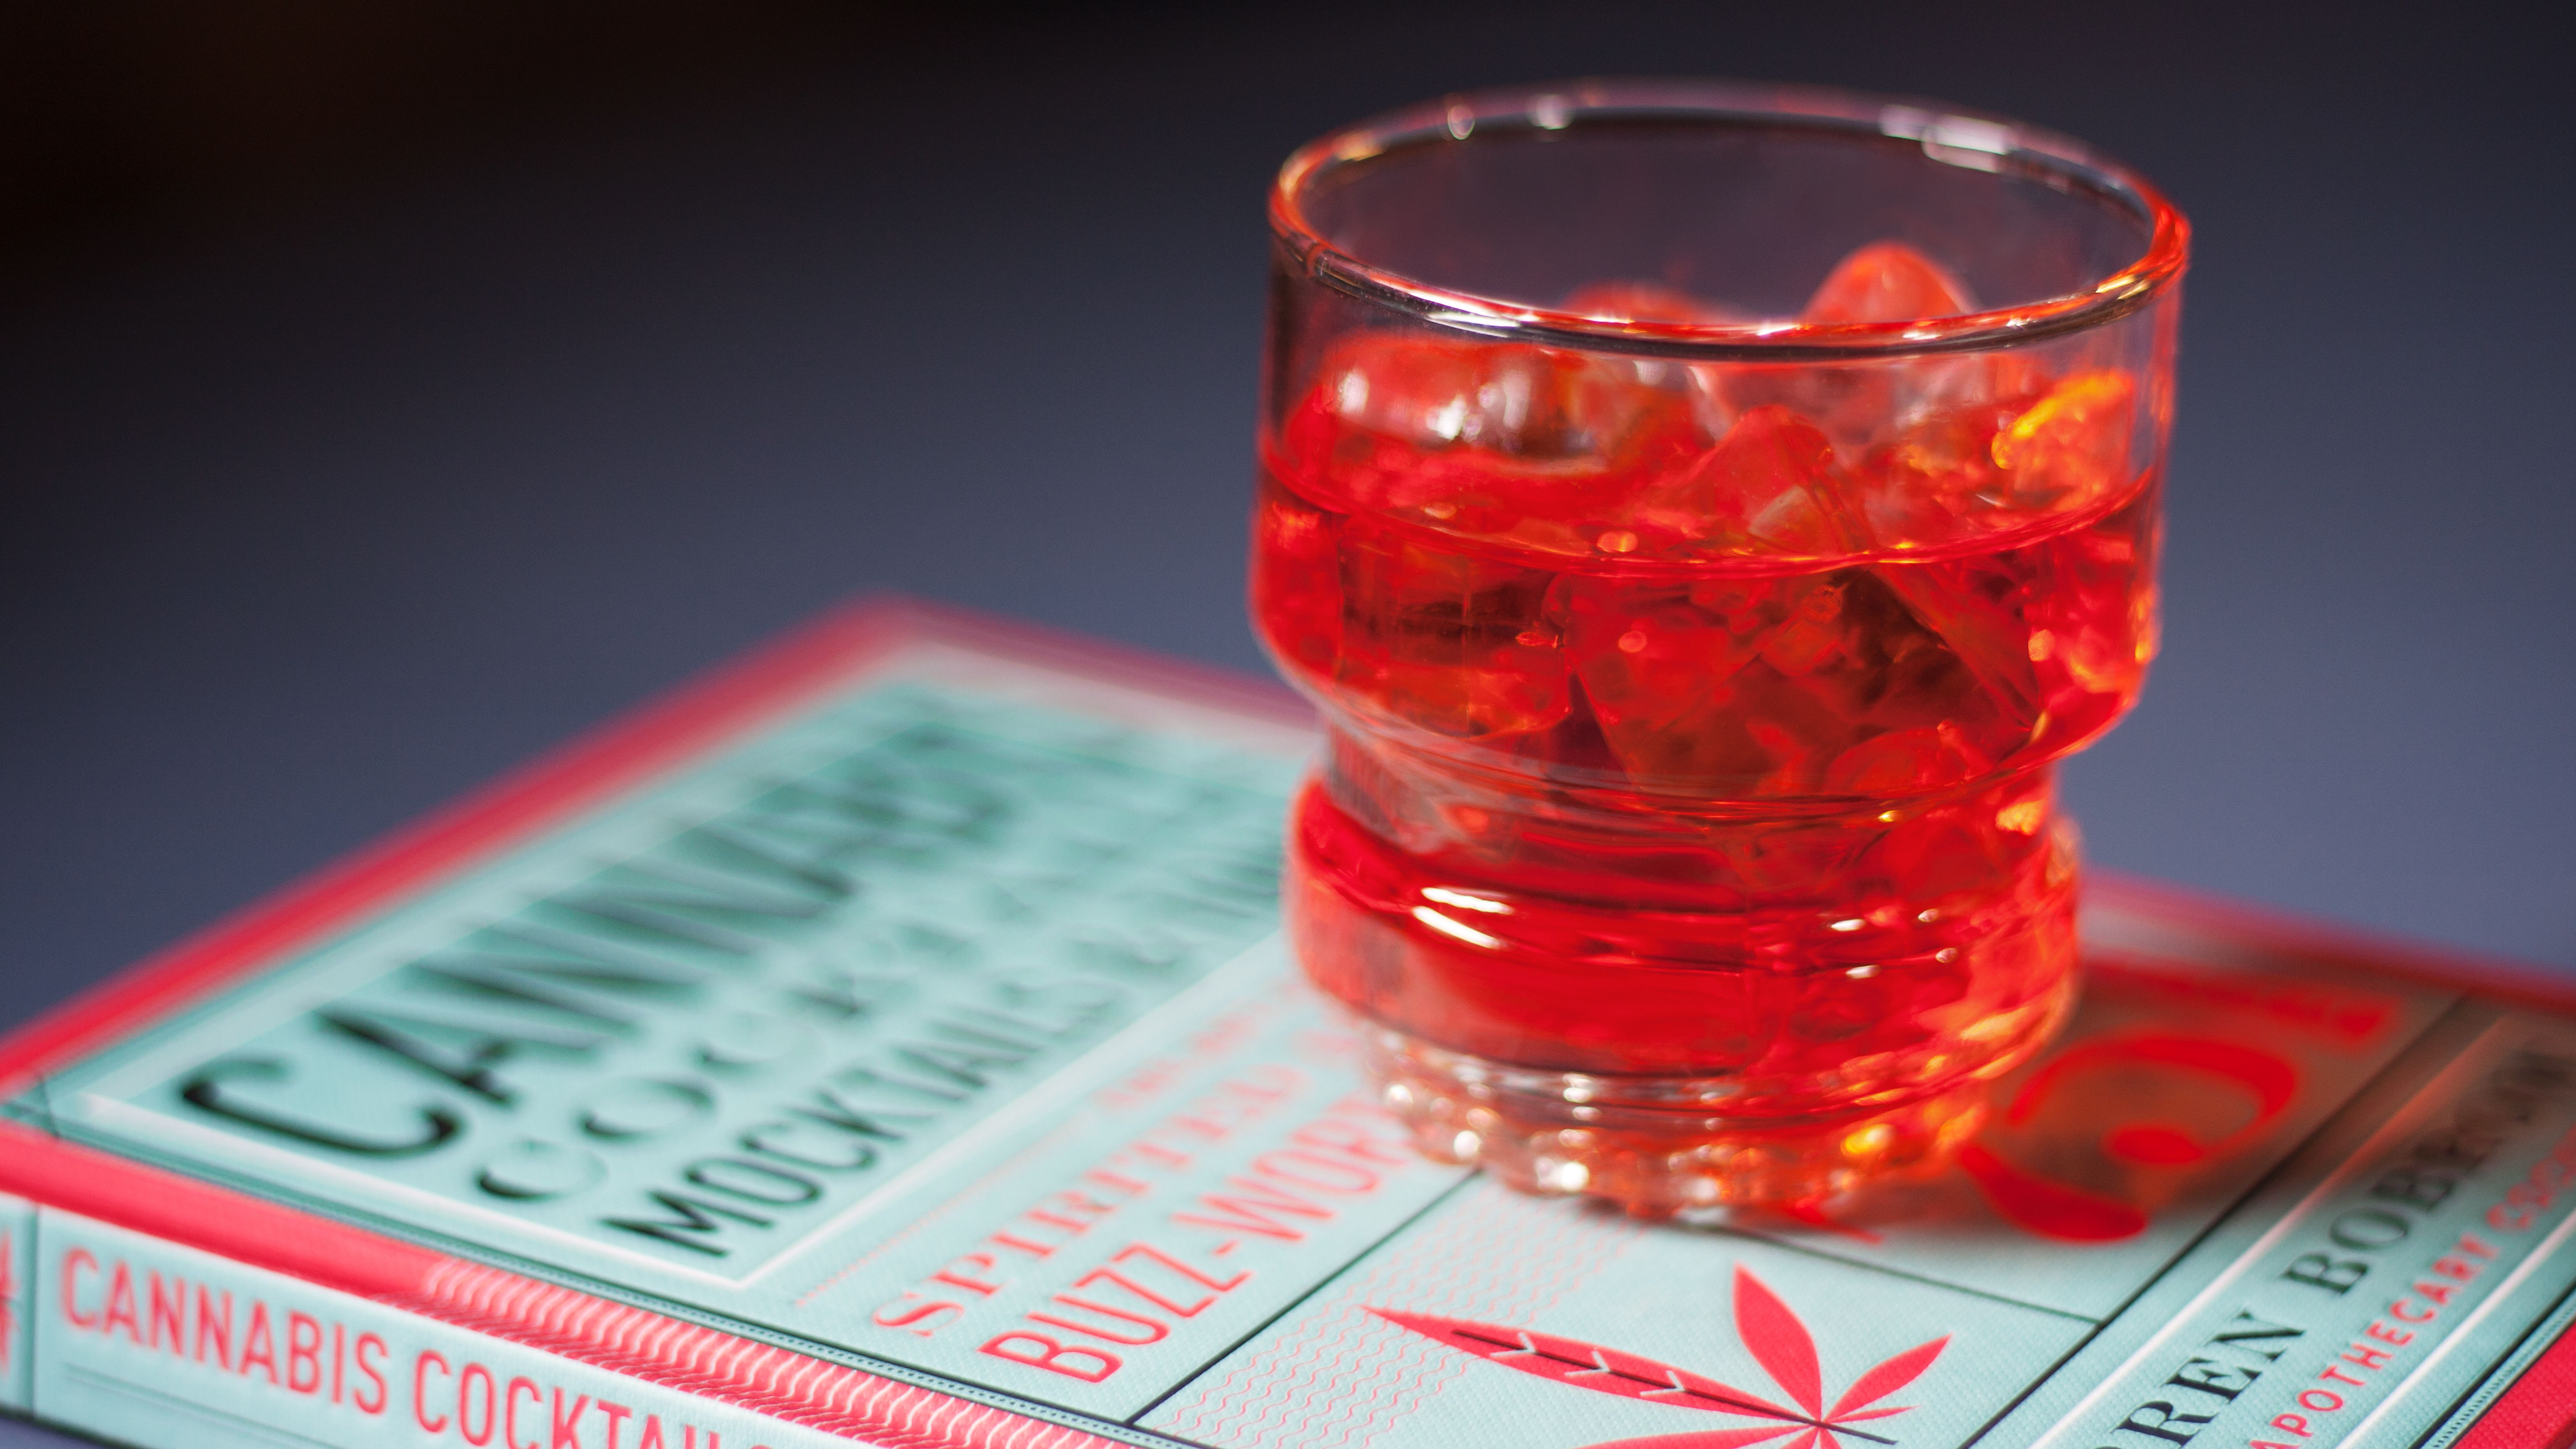 Cannabis Cocktails: Here's What You Need to Know